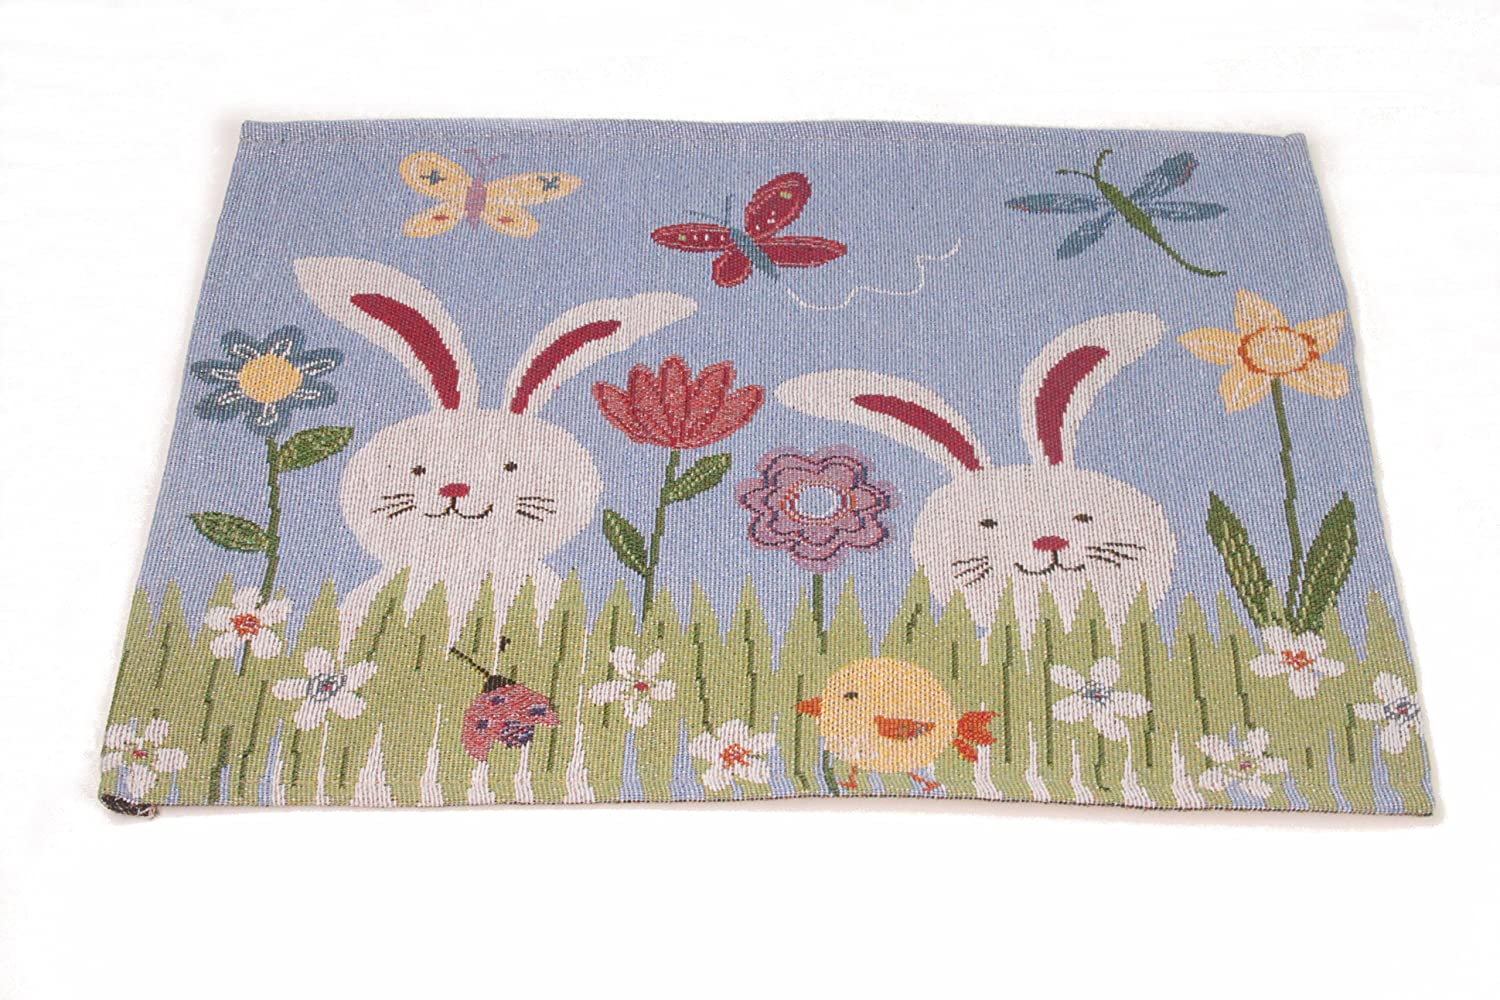 Generic Jacquard Design Decor Bird House Tapestry Cotton Placemat and Table Runner for Table,Dining Pack of 1 Set